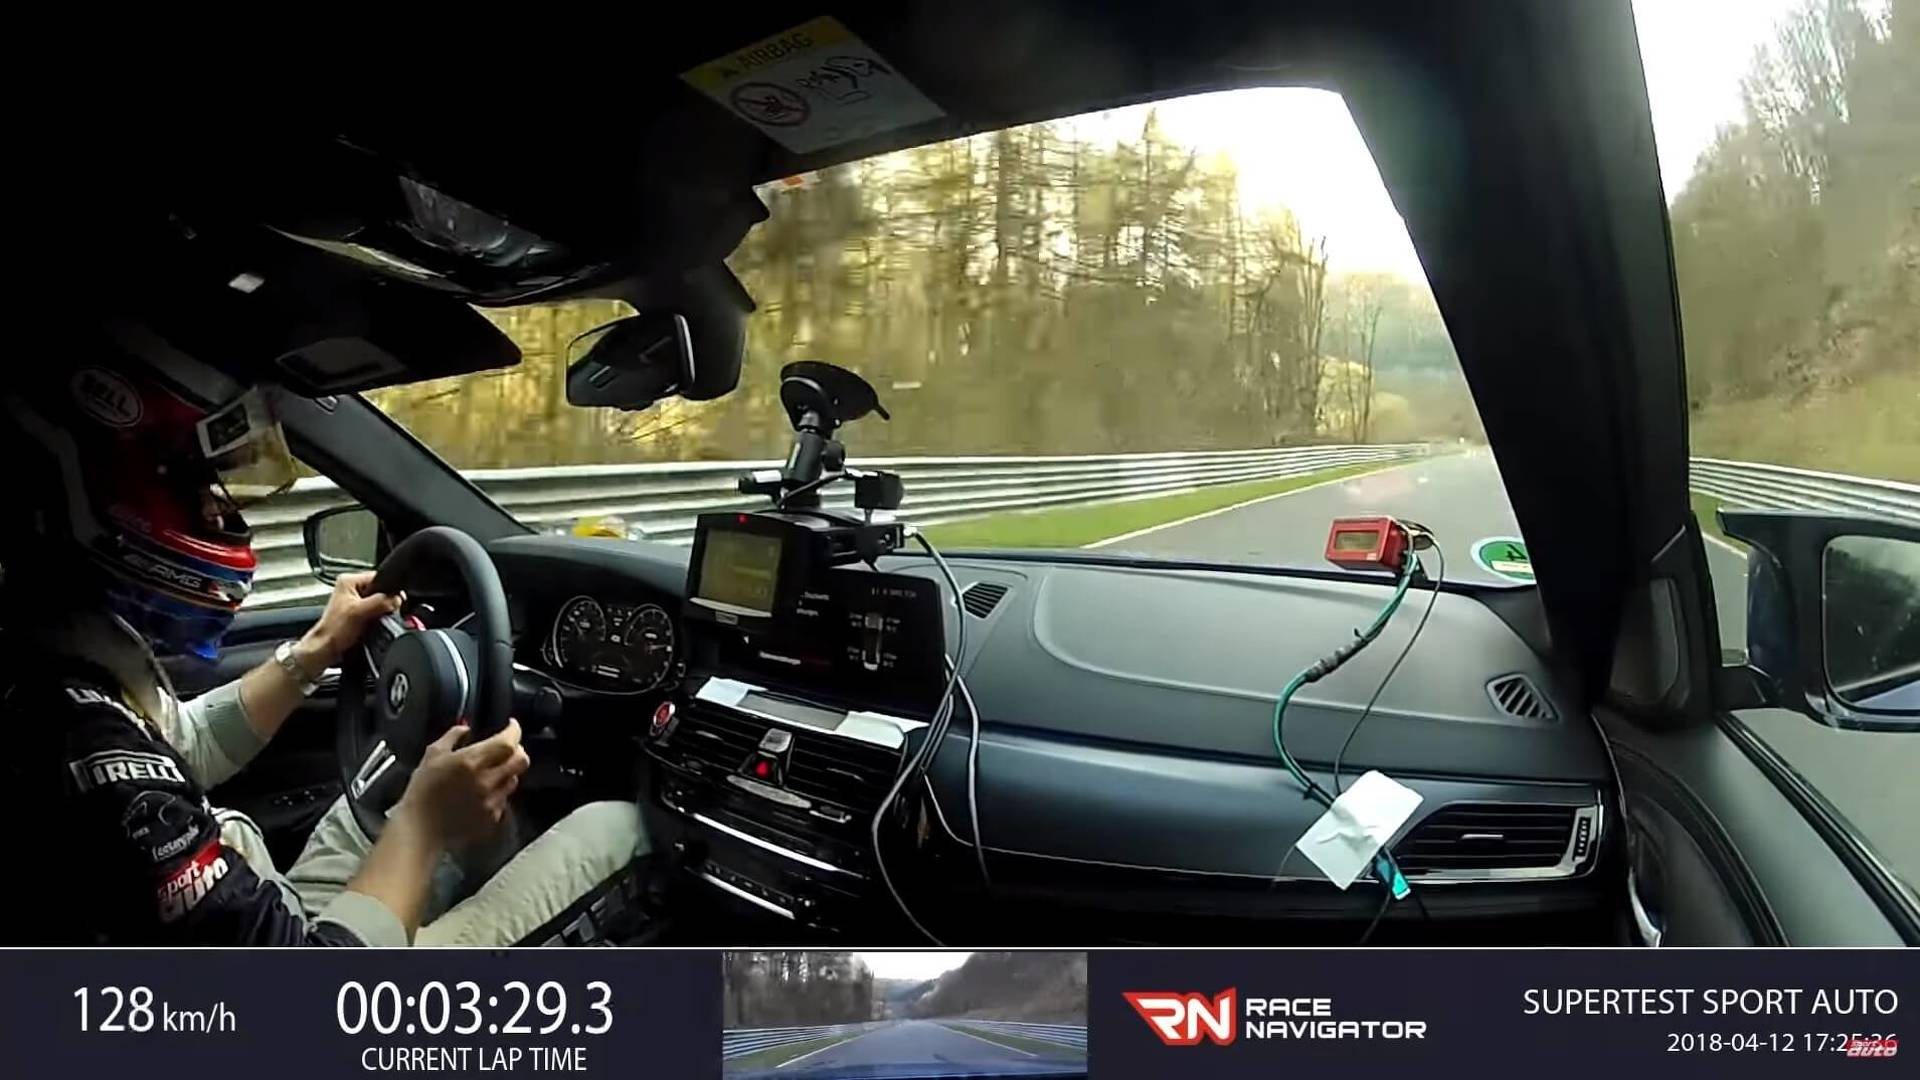 Watch The 2019 BMW M5 Lap The Nurburgring In 7:38 92